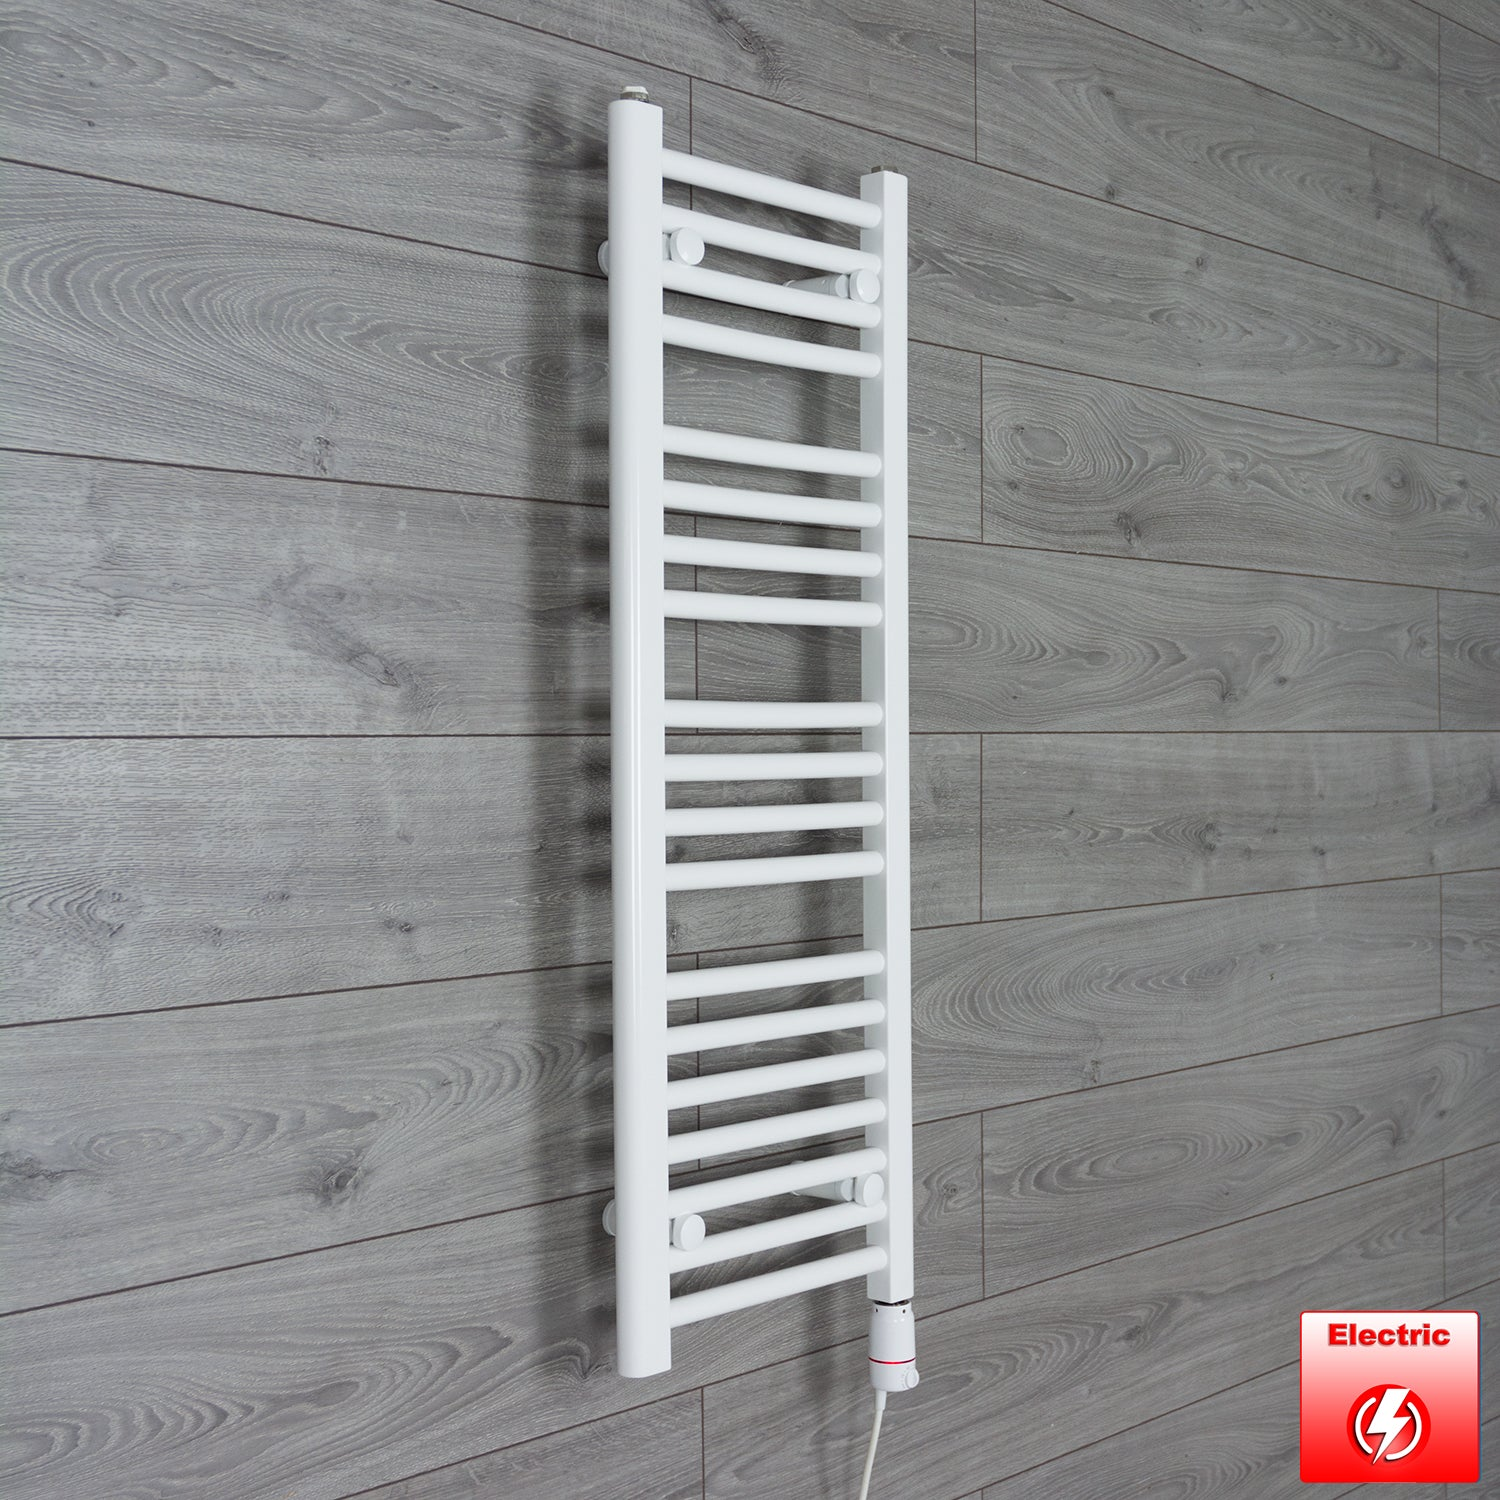 350mm Wide 1000mm High Flat WHITE Pre-Filled Electric Heated Towel Rail Radiator HTR,GT Thermostatic